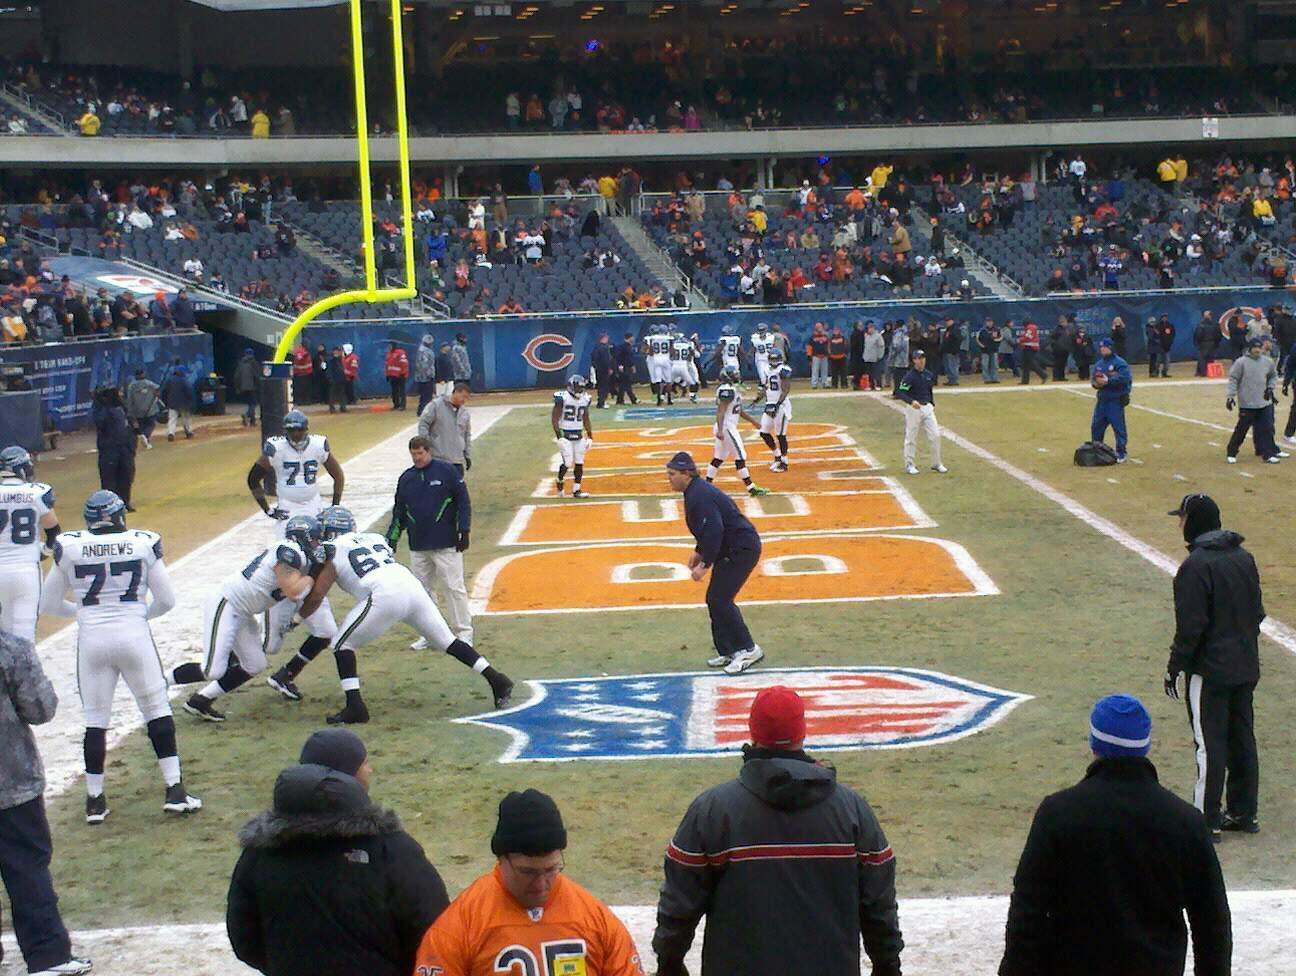 Soldier Field Section 119 Row 18 Seat 3